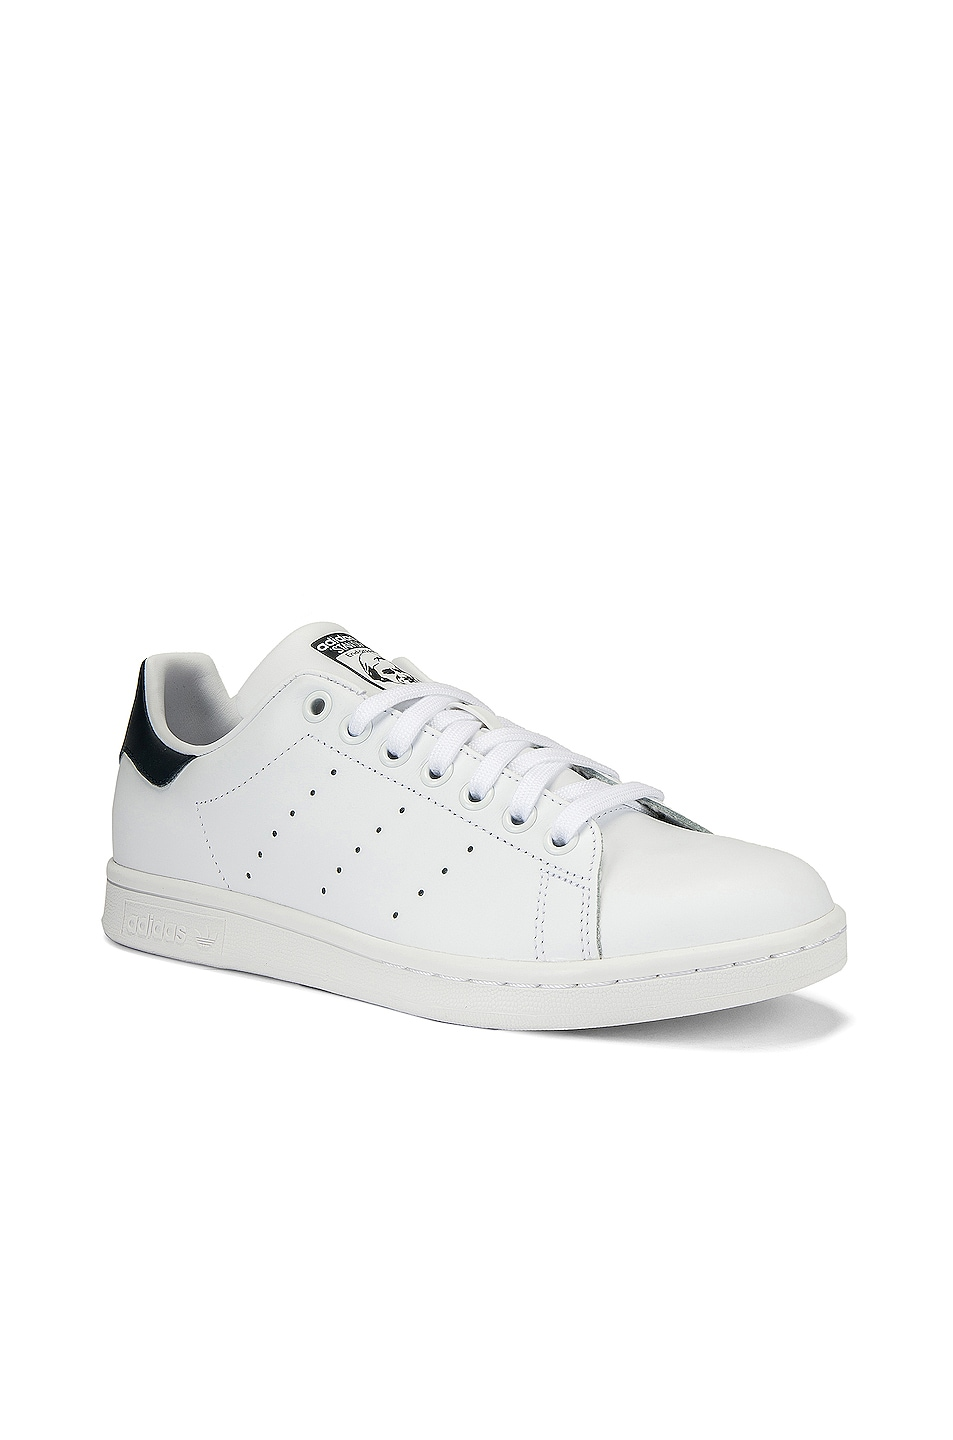 Image 2 of adidas Originals Stan Smith in White & Dark Blue